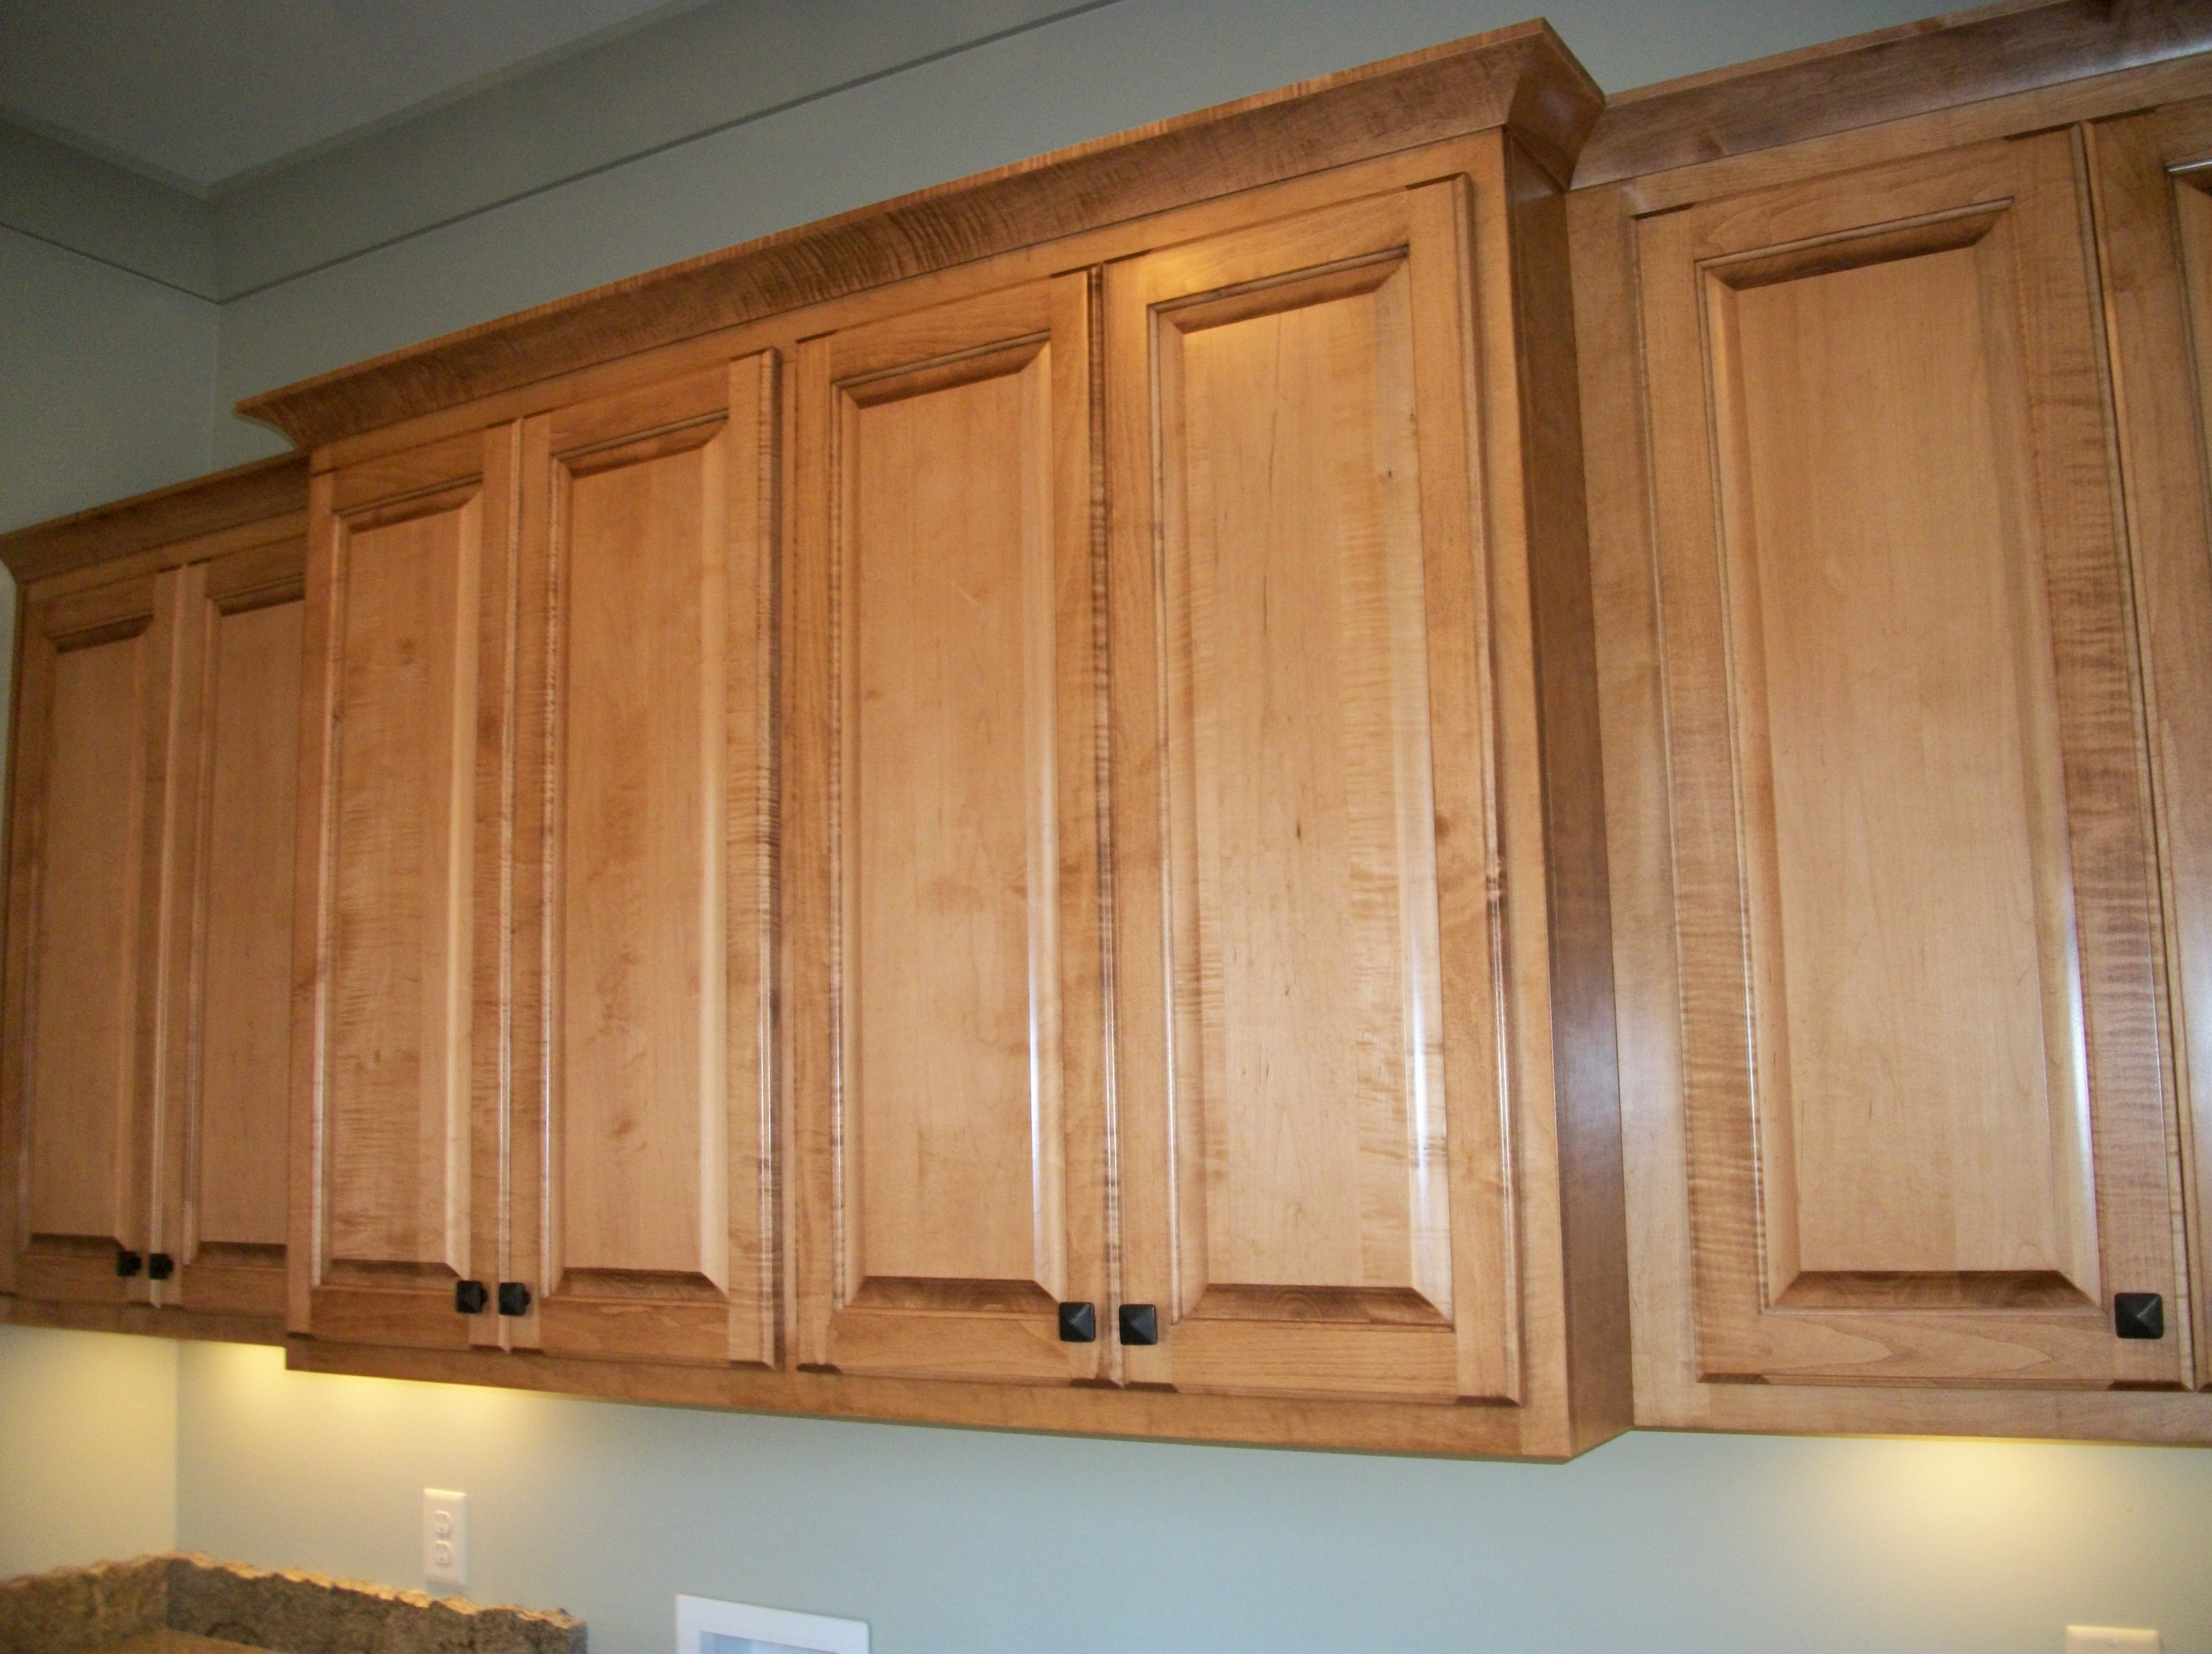 Custom Laundry Room and Utility Room Cabinets | HealthyCabinetmakers.